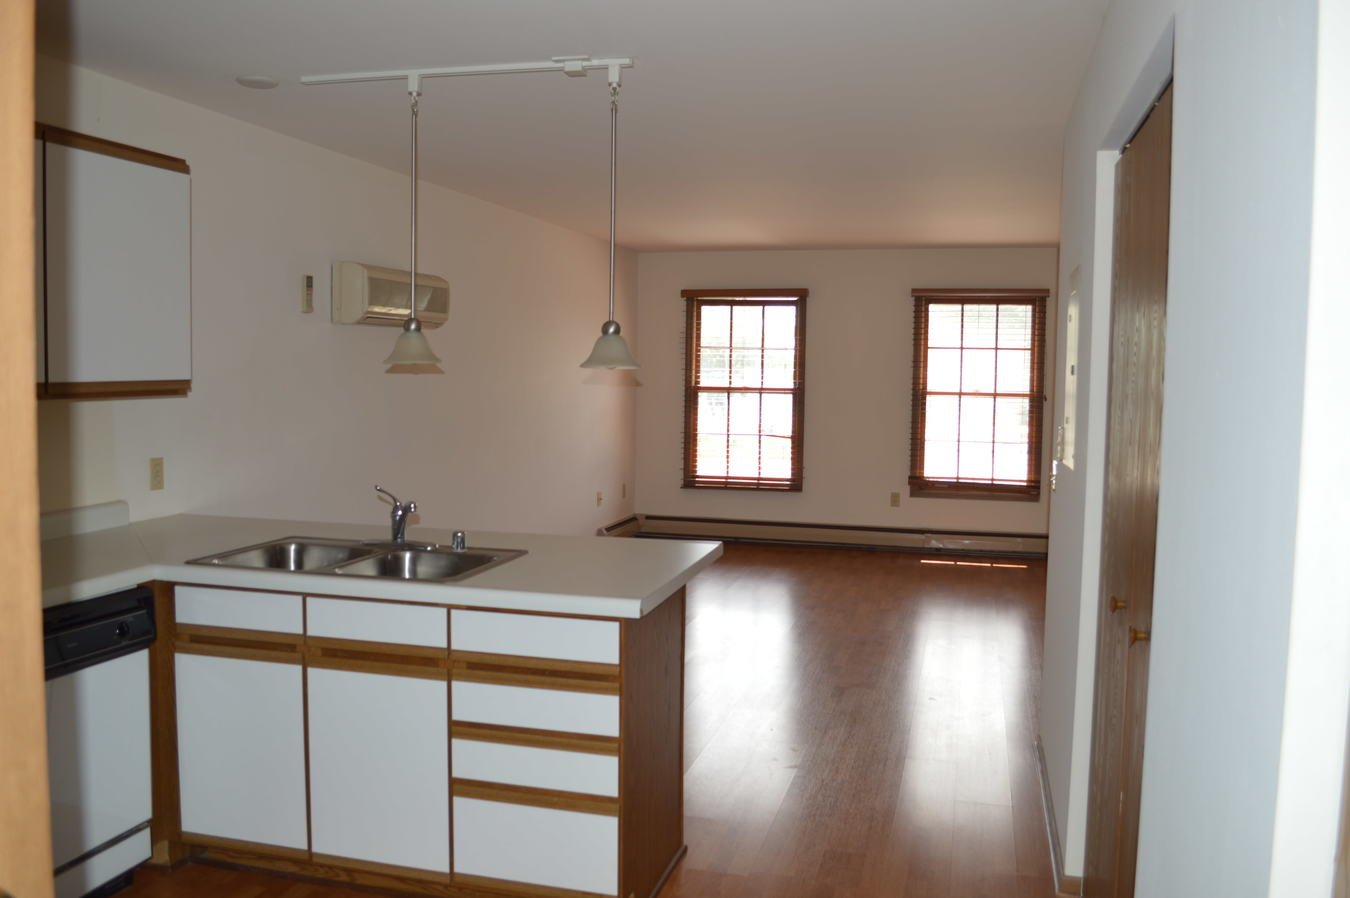 2 Bedrooms 2 Bathrooms Apartment for rent at 404 E Wilson St in Madison, WI